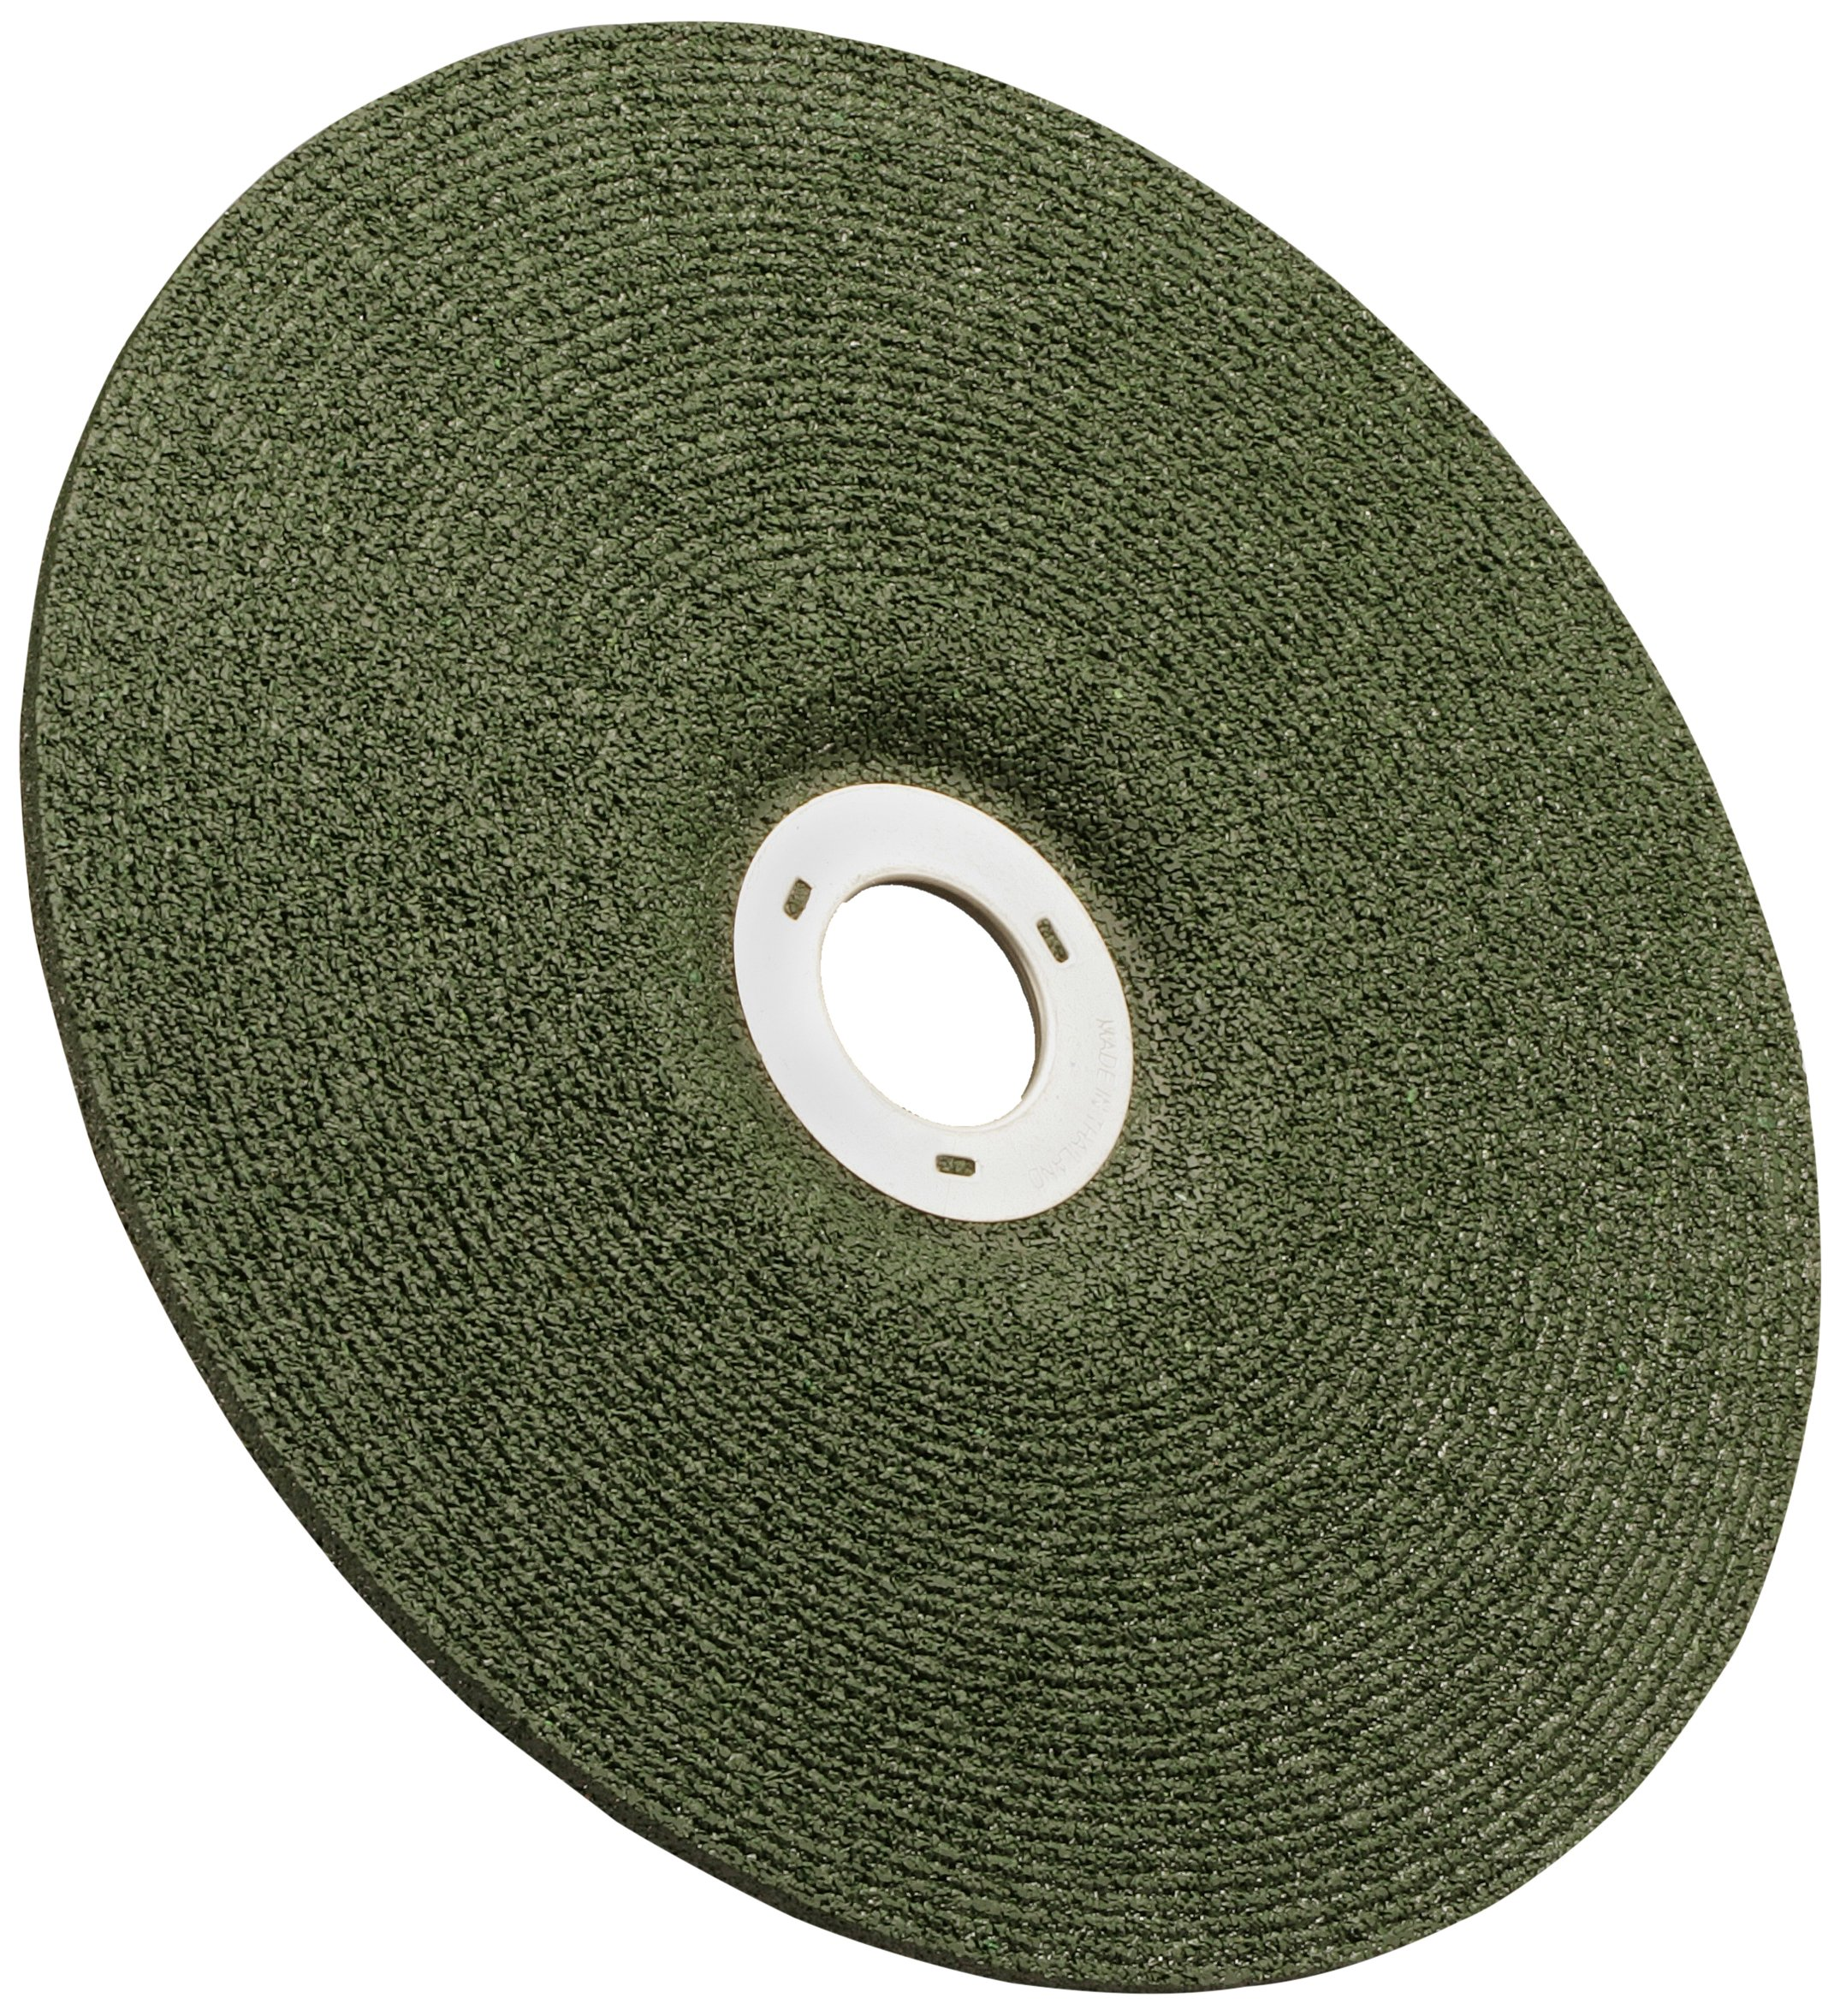 3M(TM) Green Corps(TM) Cutting/Grinding Wheel, Ceramic Aluminum Oxide, 4-1/2'' Diameter x 1/8'' Thick, 7/8'' Center Hole Diameter, 36 Grit, 13300 rpm, Green  (Pack of 20) by 3M